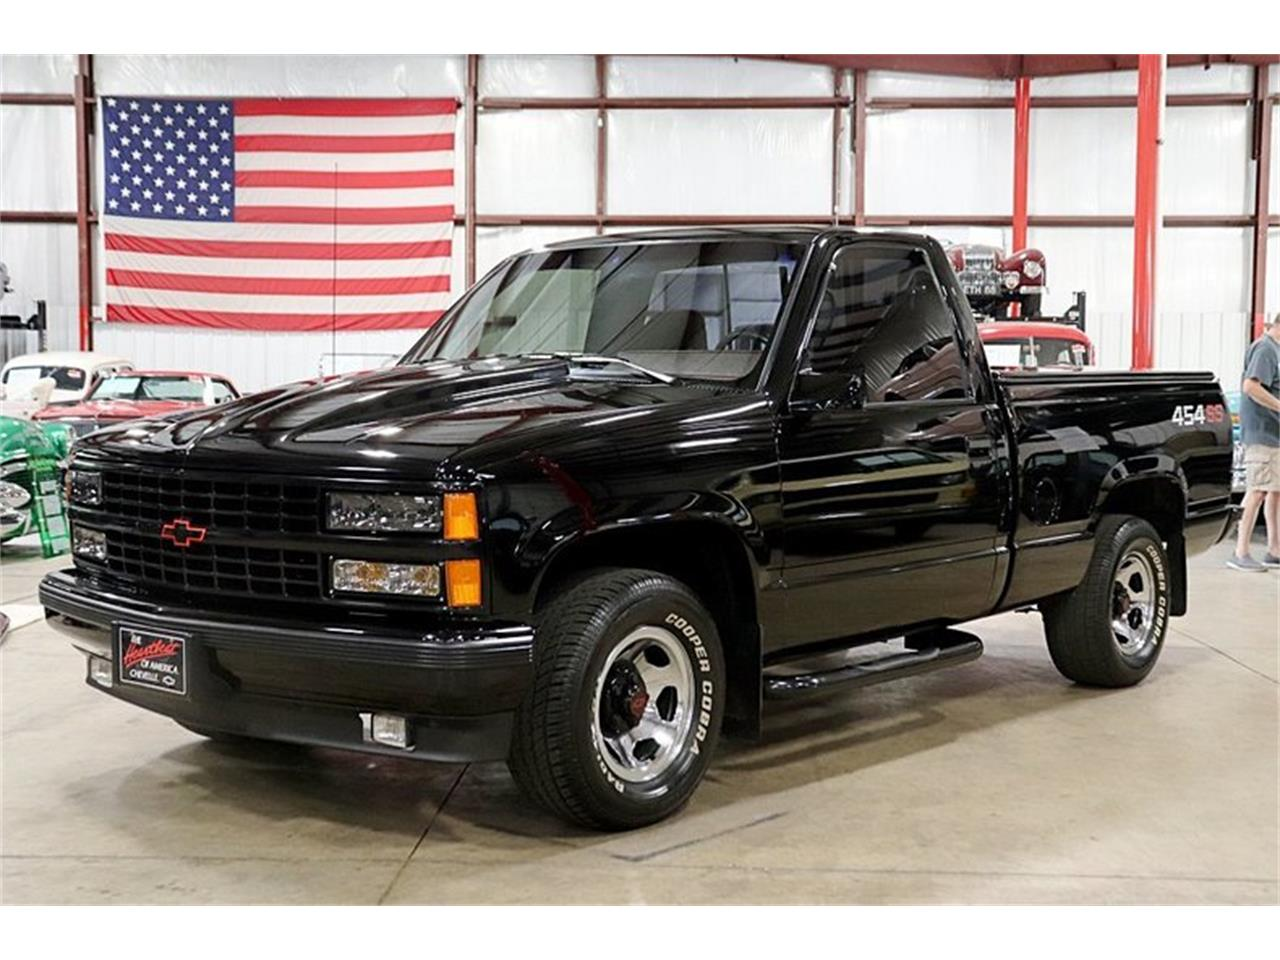 for sale 1990 chevrolet 1500 in kentwood, michigan cars - grand rapids, mi at geebo